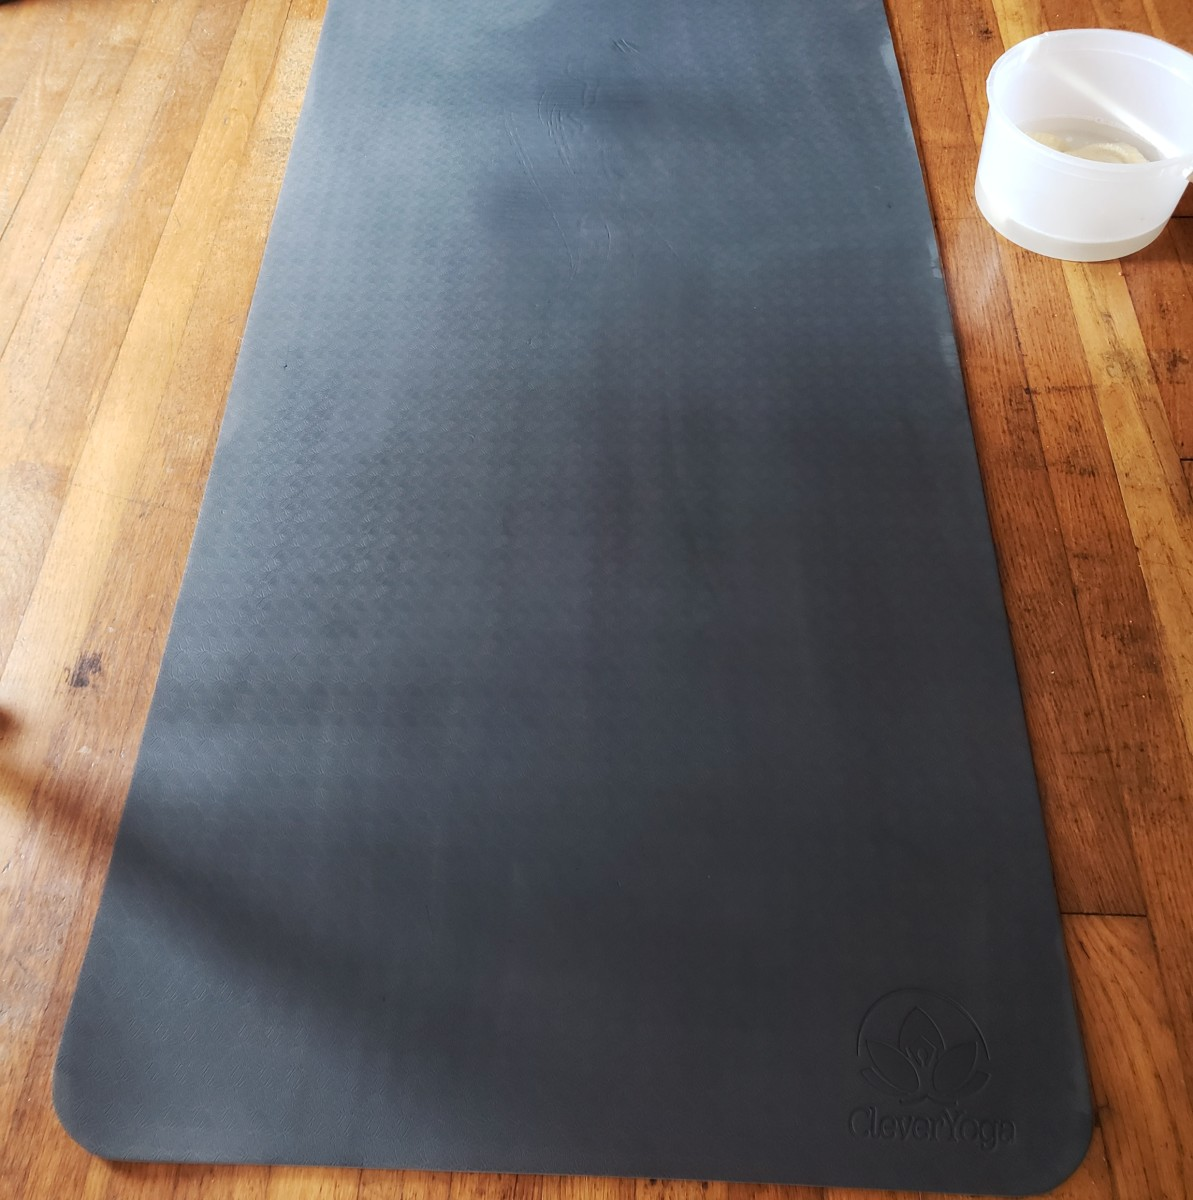 A Quick and Simple Way to Clean Your Yoga Mat